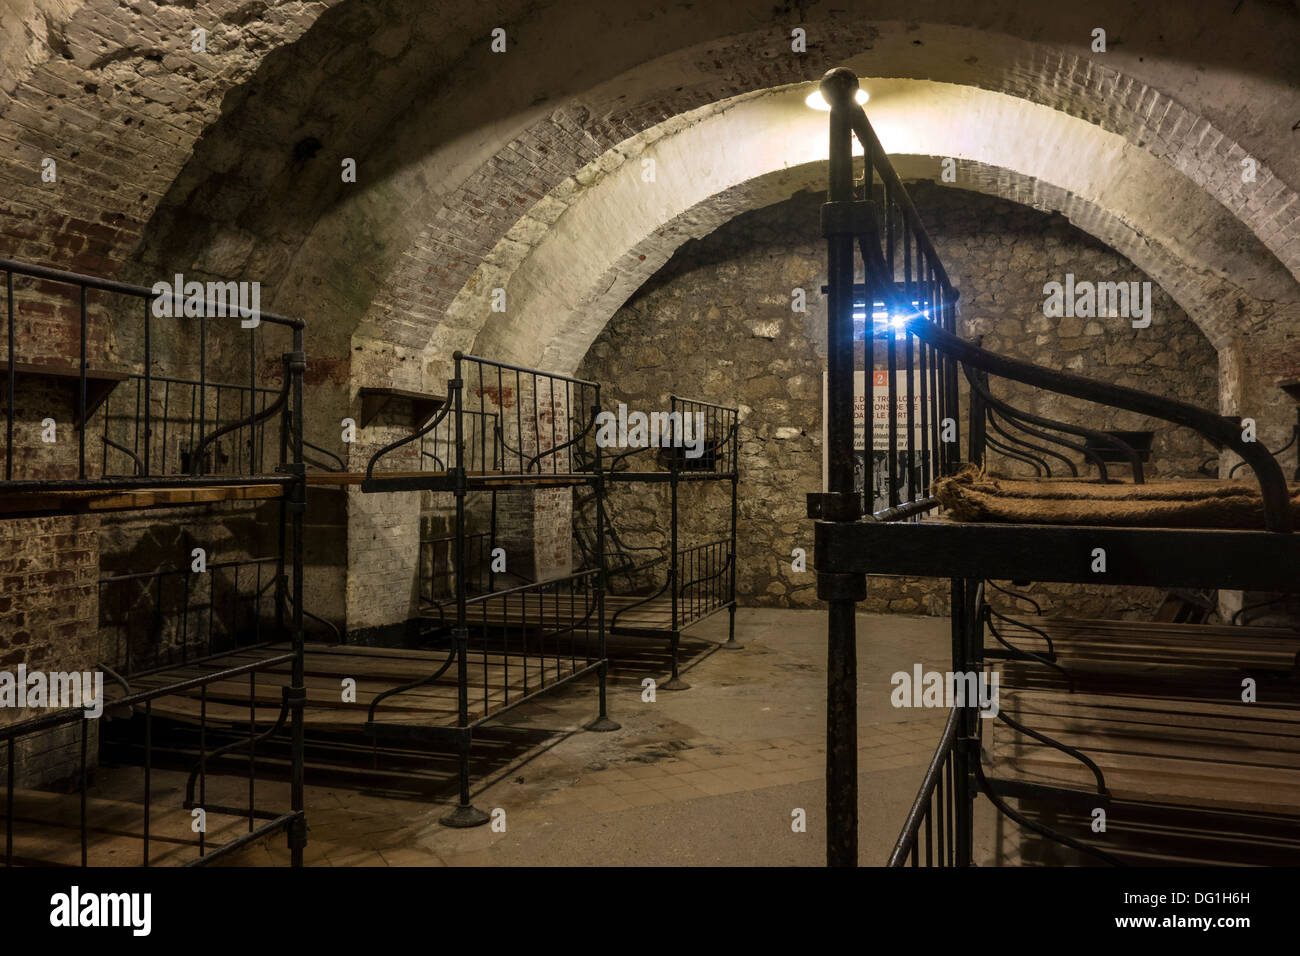 Dormitory with metal bunks in the First World War One Fort de Vaux at Vaux-Devant-Damloup, Lorraine, Battle of Verdun, France - Stock Image